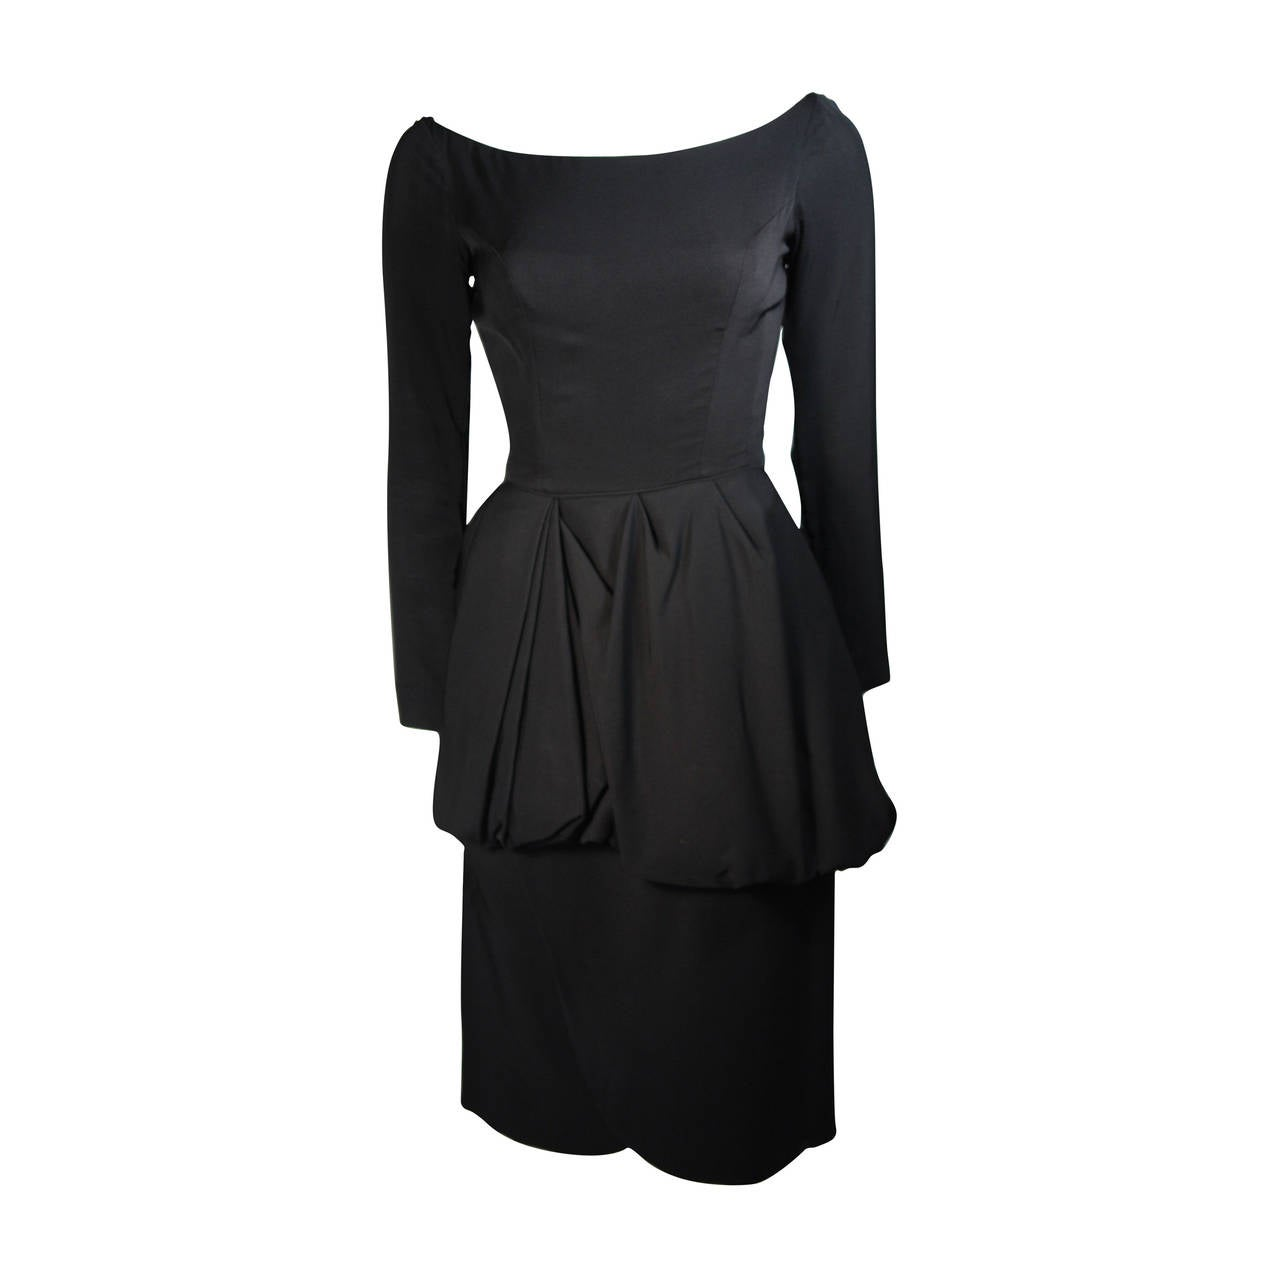 Ceil Chapman 1950's Black Cocktail Dress with Draped Peplum Detail Size Small 1